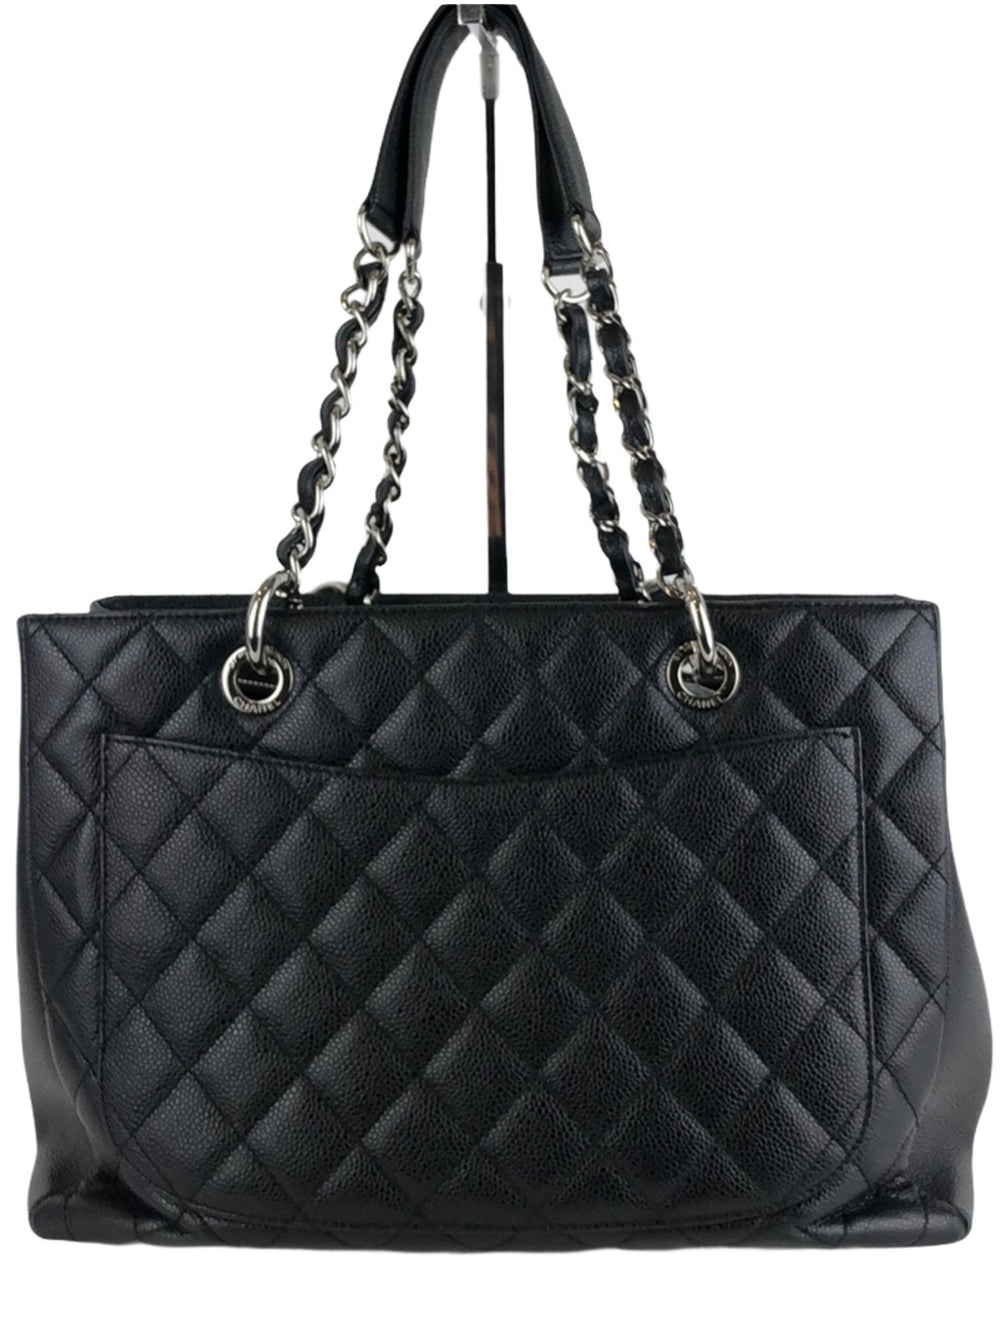 Chanel Black Caviar Leather GST (Grand Shopper Tote)